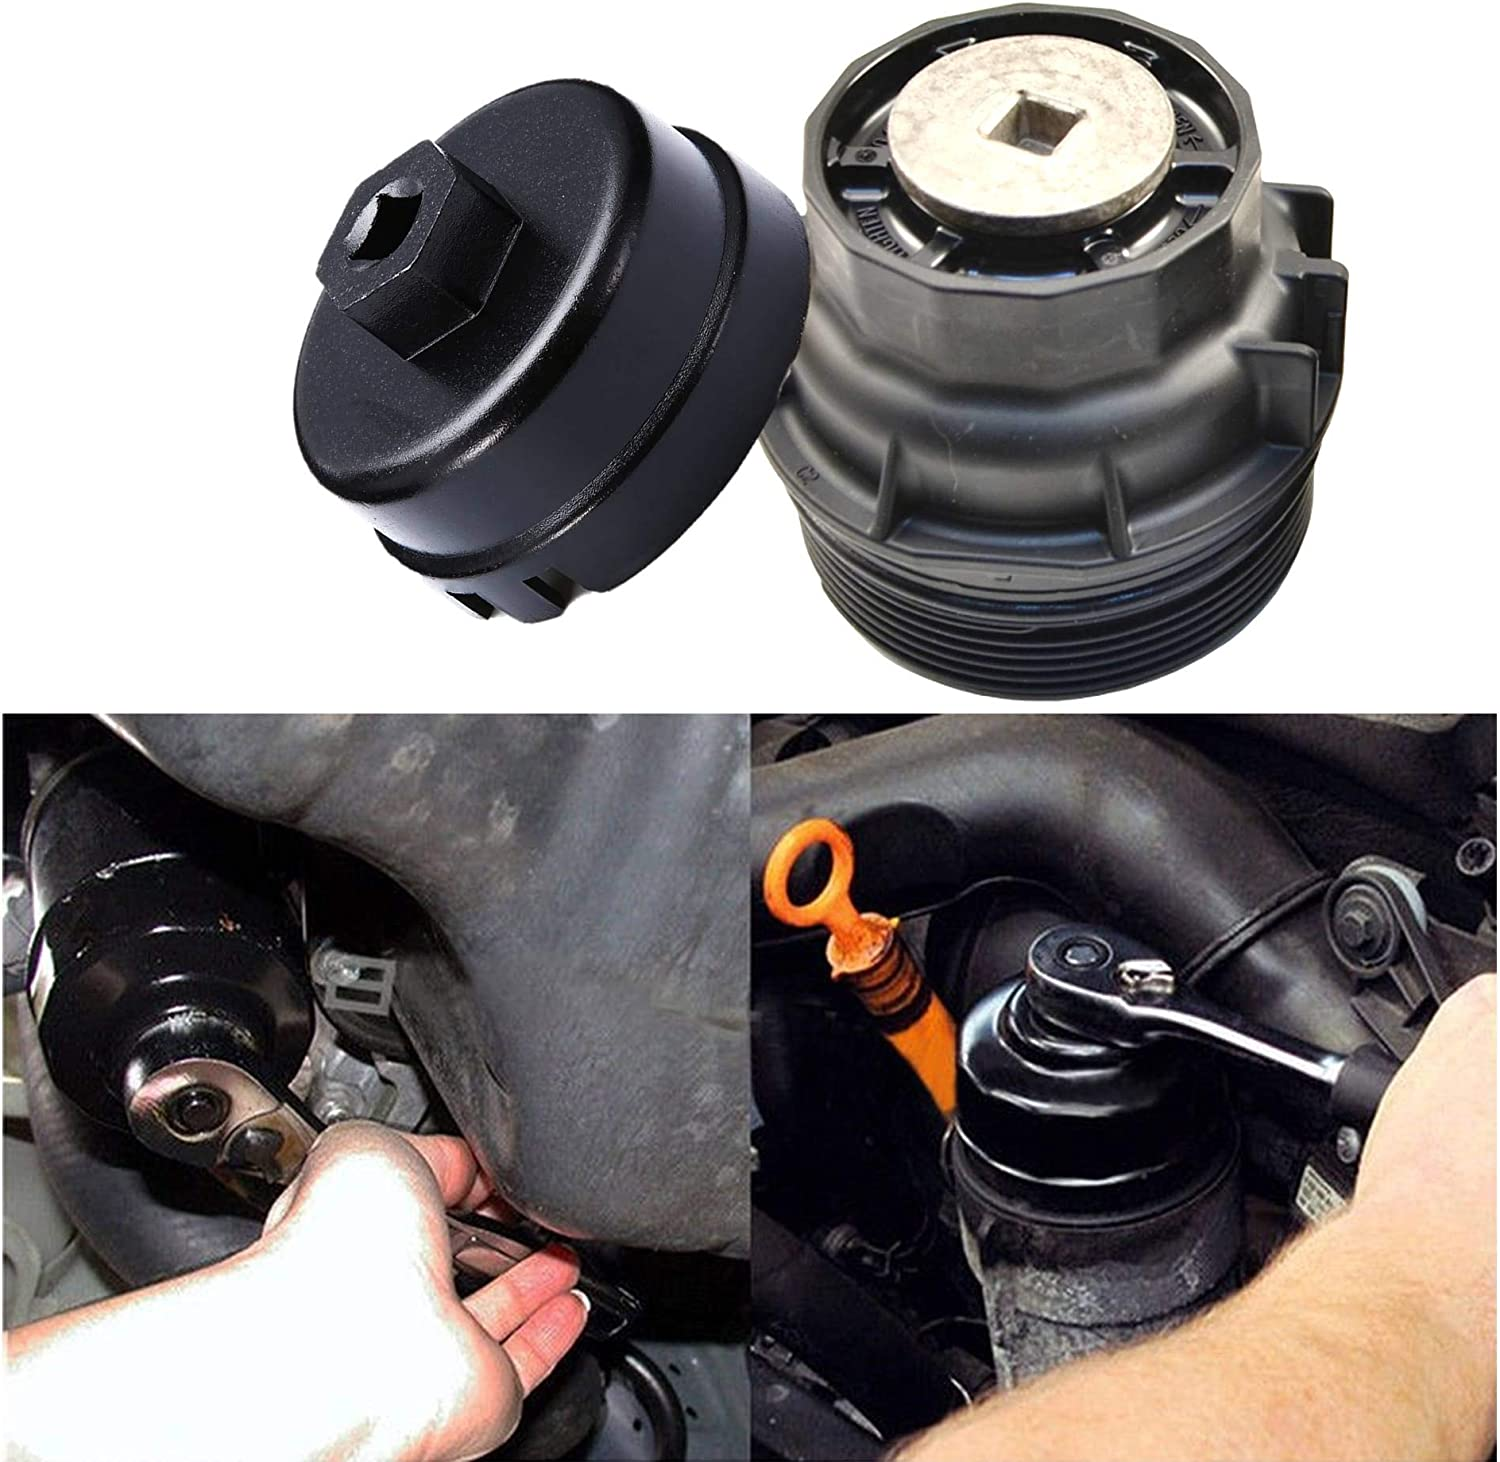 BESTWELL4U Replacement for Toyota//Lexus Oil Filter Wrench Fit Toyota Prius//Prius V//Corolla//Matrix Scion iM//iQ//xD with 1.8 Liter Lexus CT200h